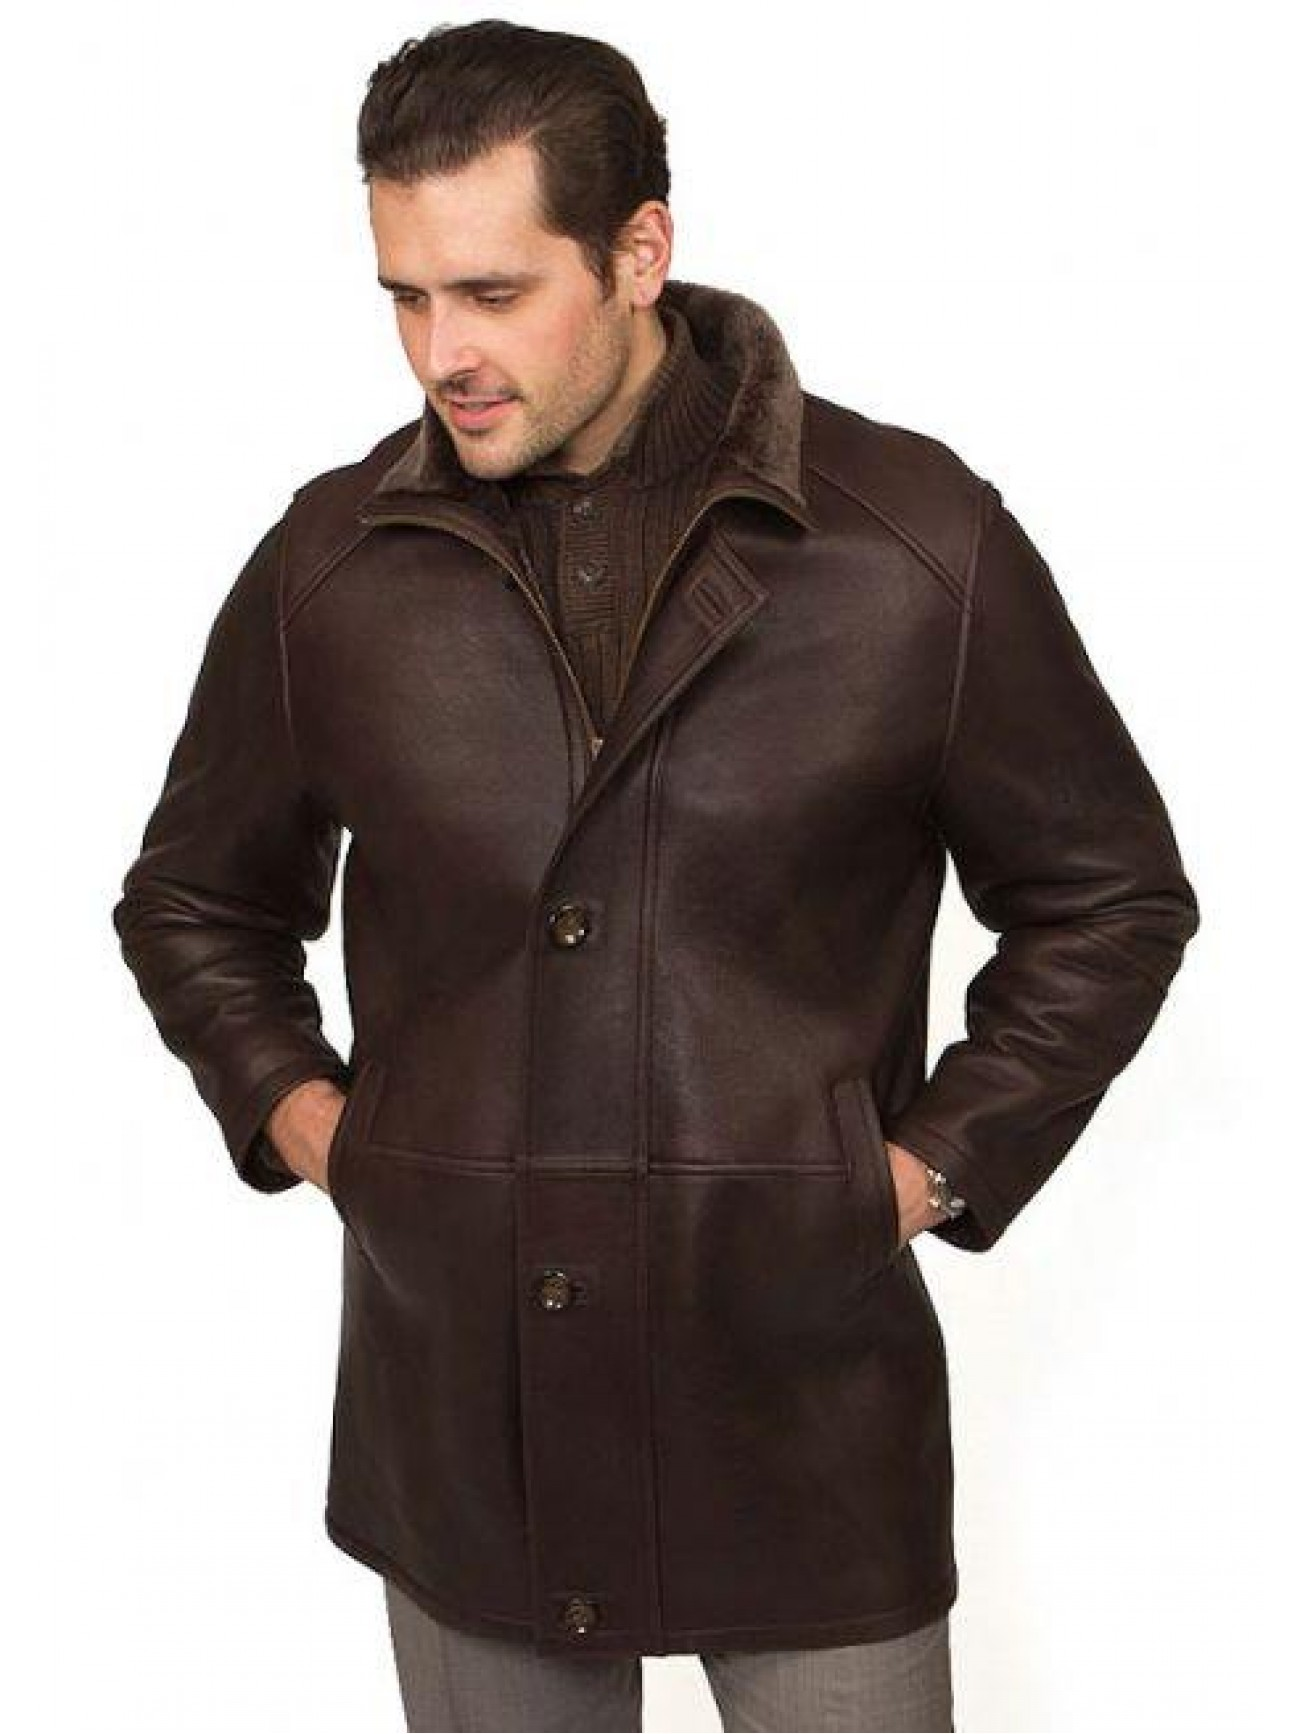 Men S Suits On Pinterest: Men's Boston Shearling Coat